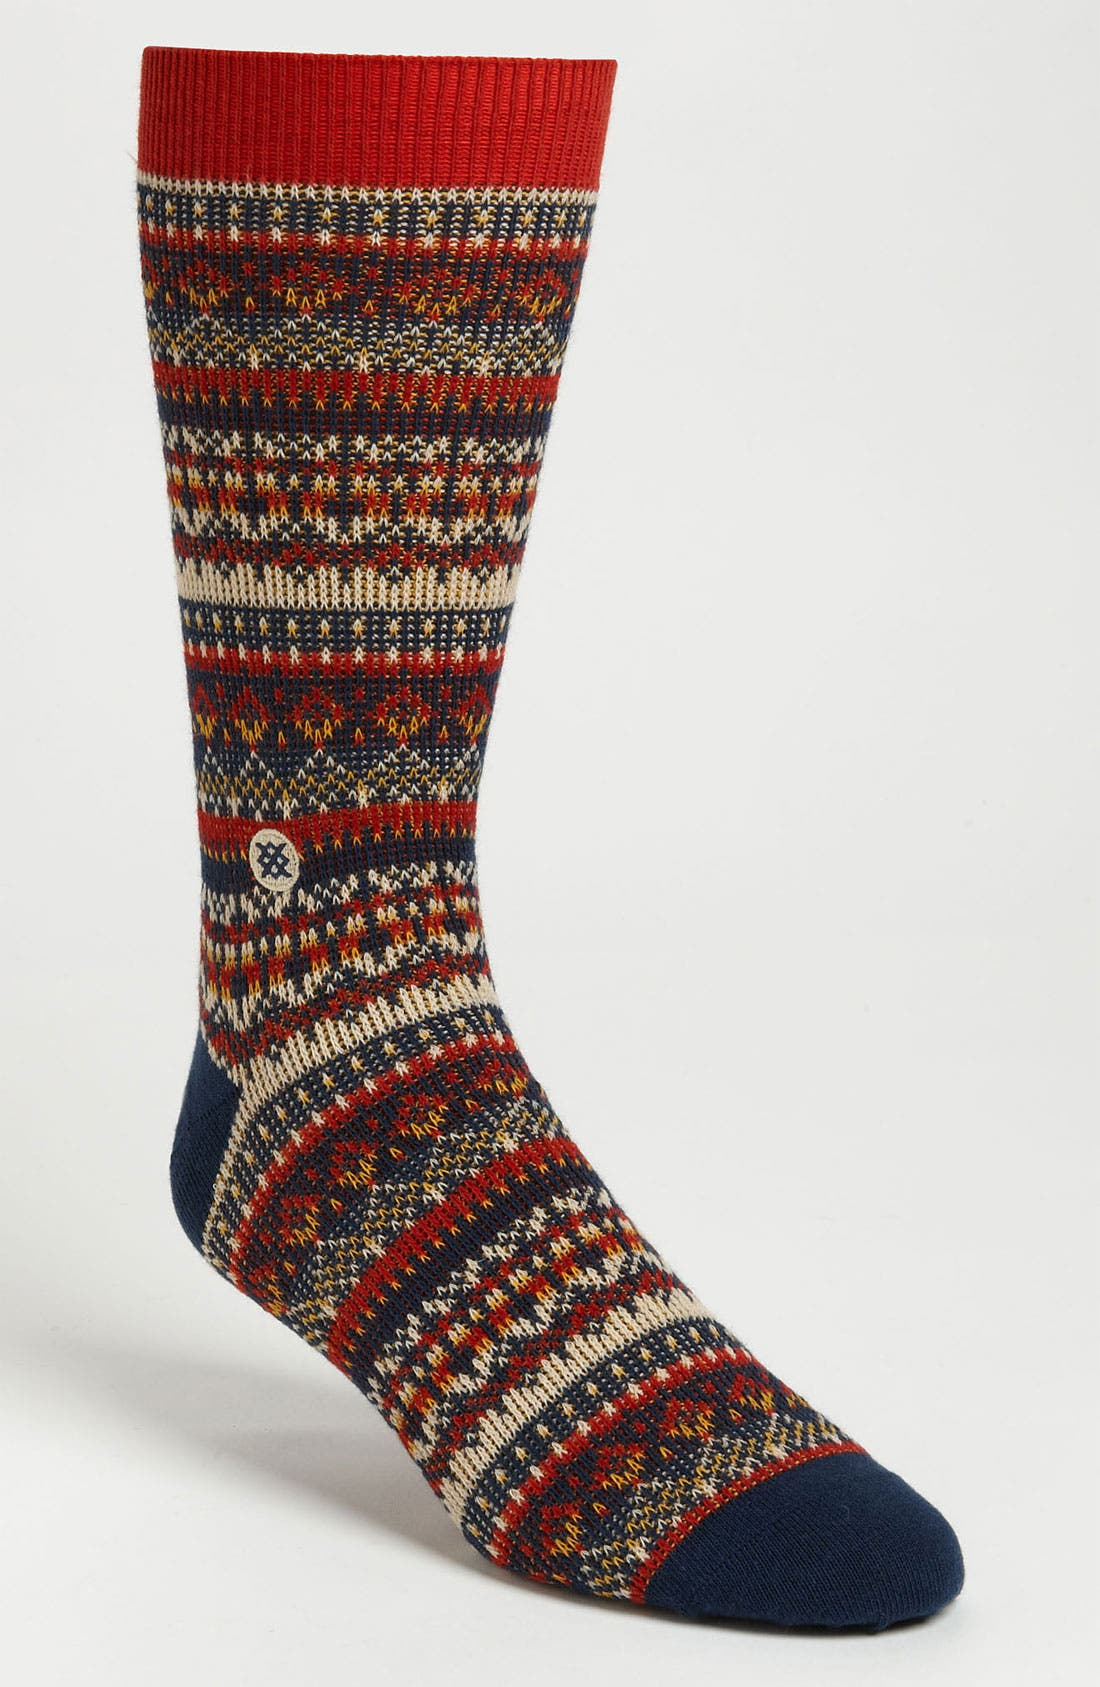 Alternate Image 1 Selected - Stance 'Moorland' Socks